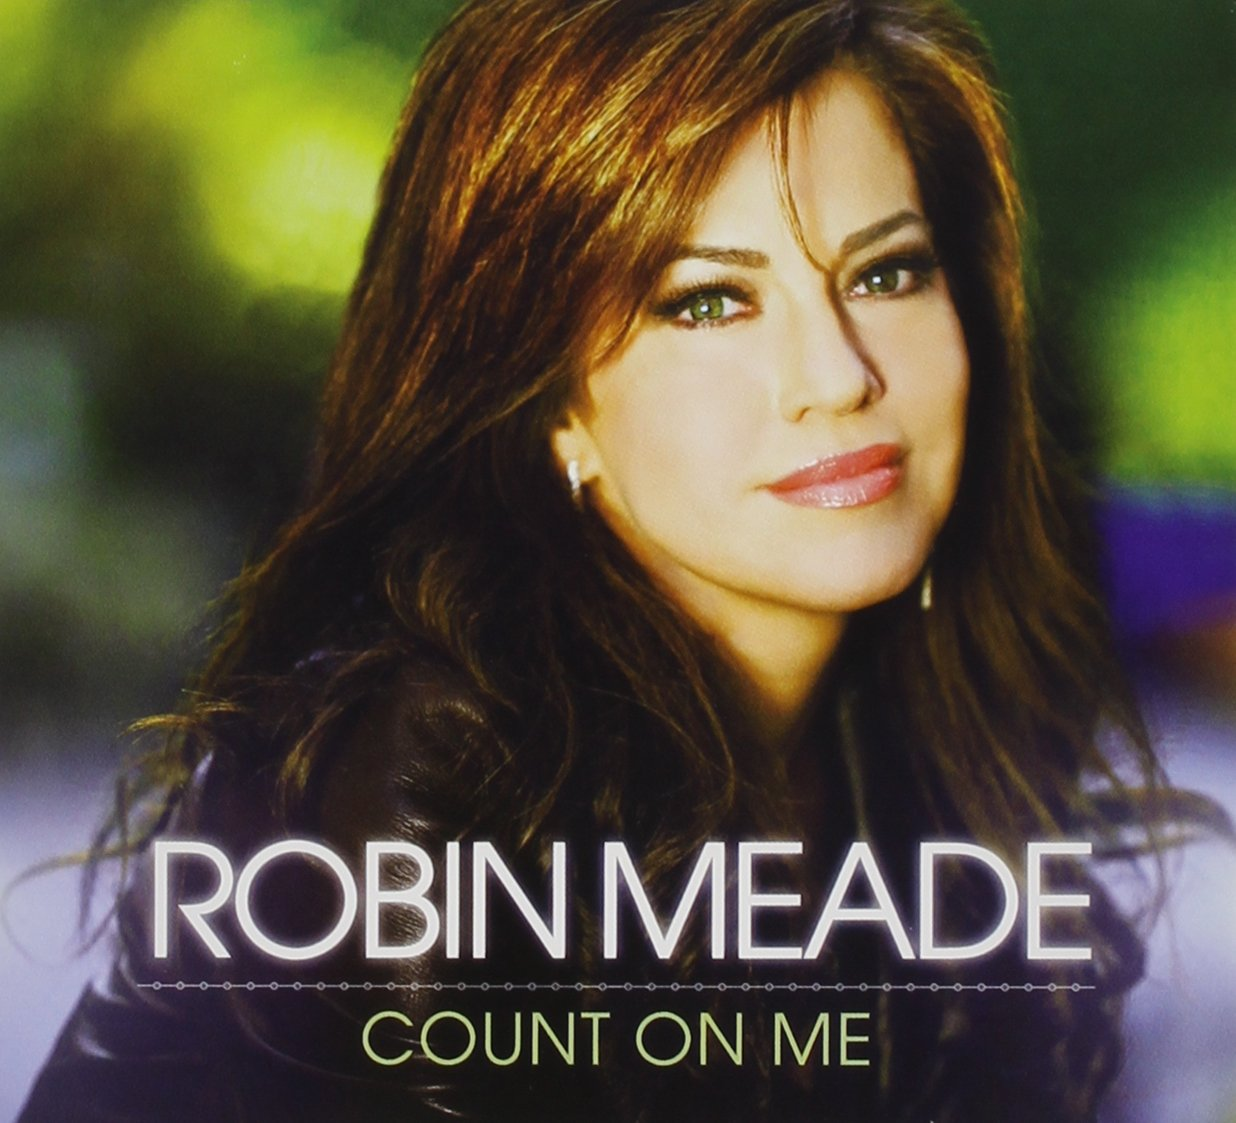 Robin Meade Count On Me Amazon Music